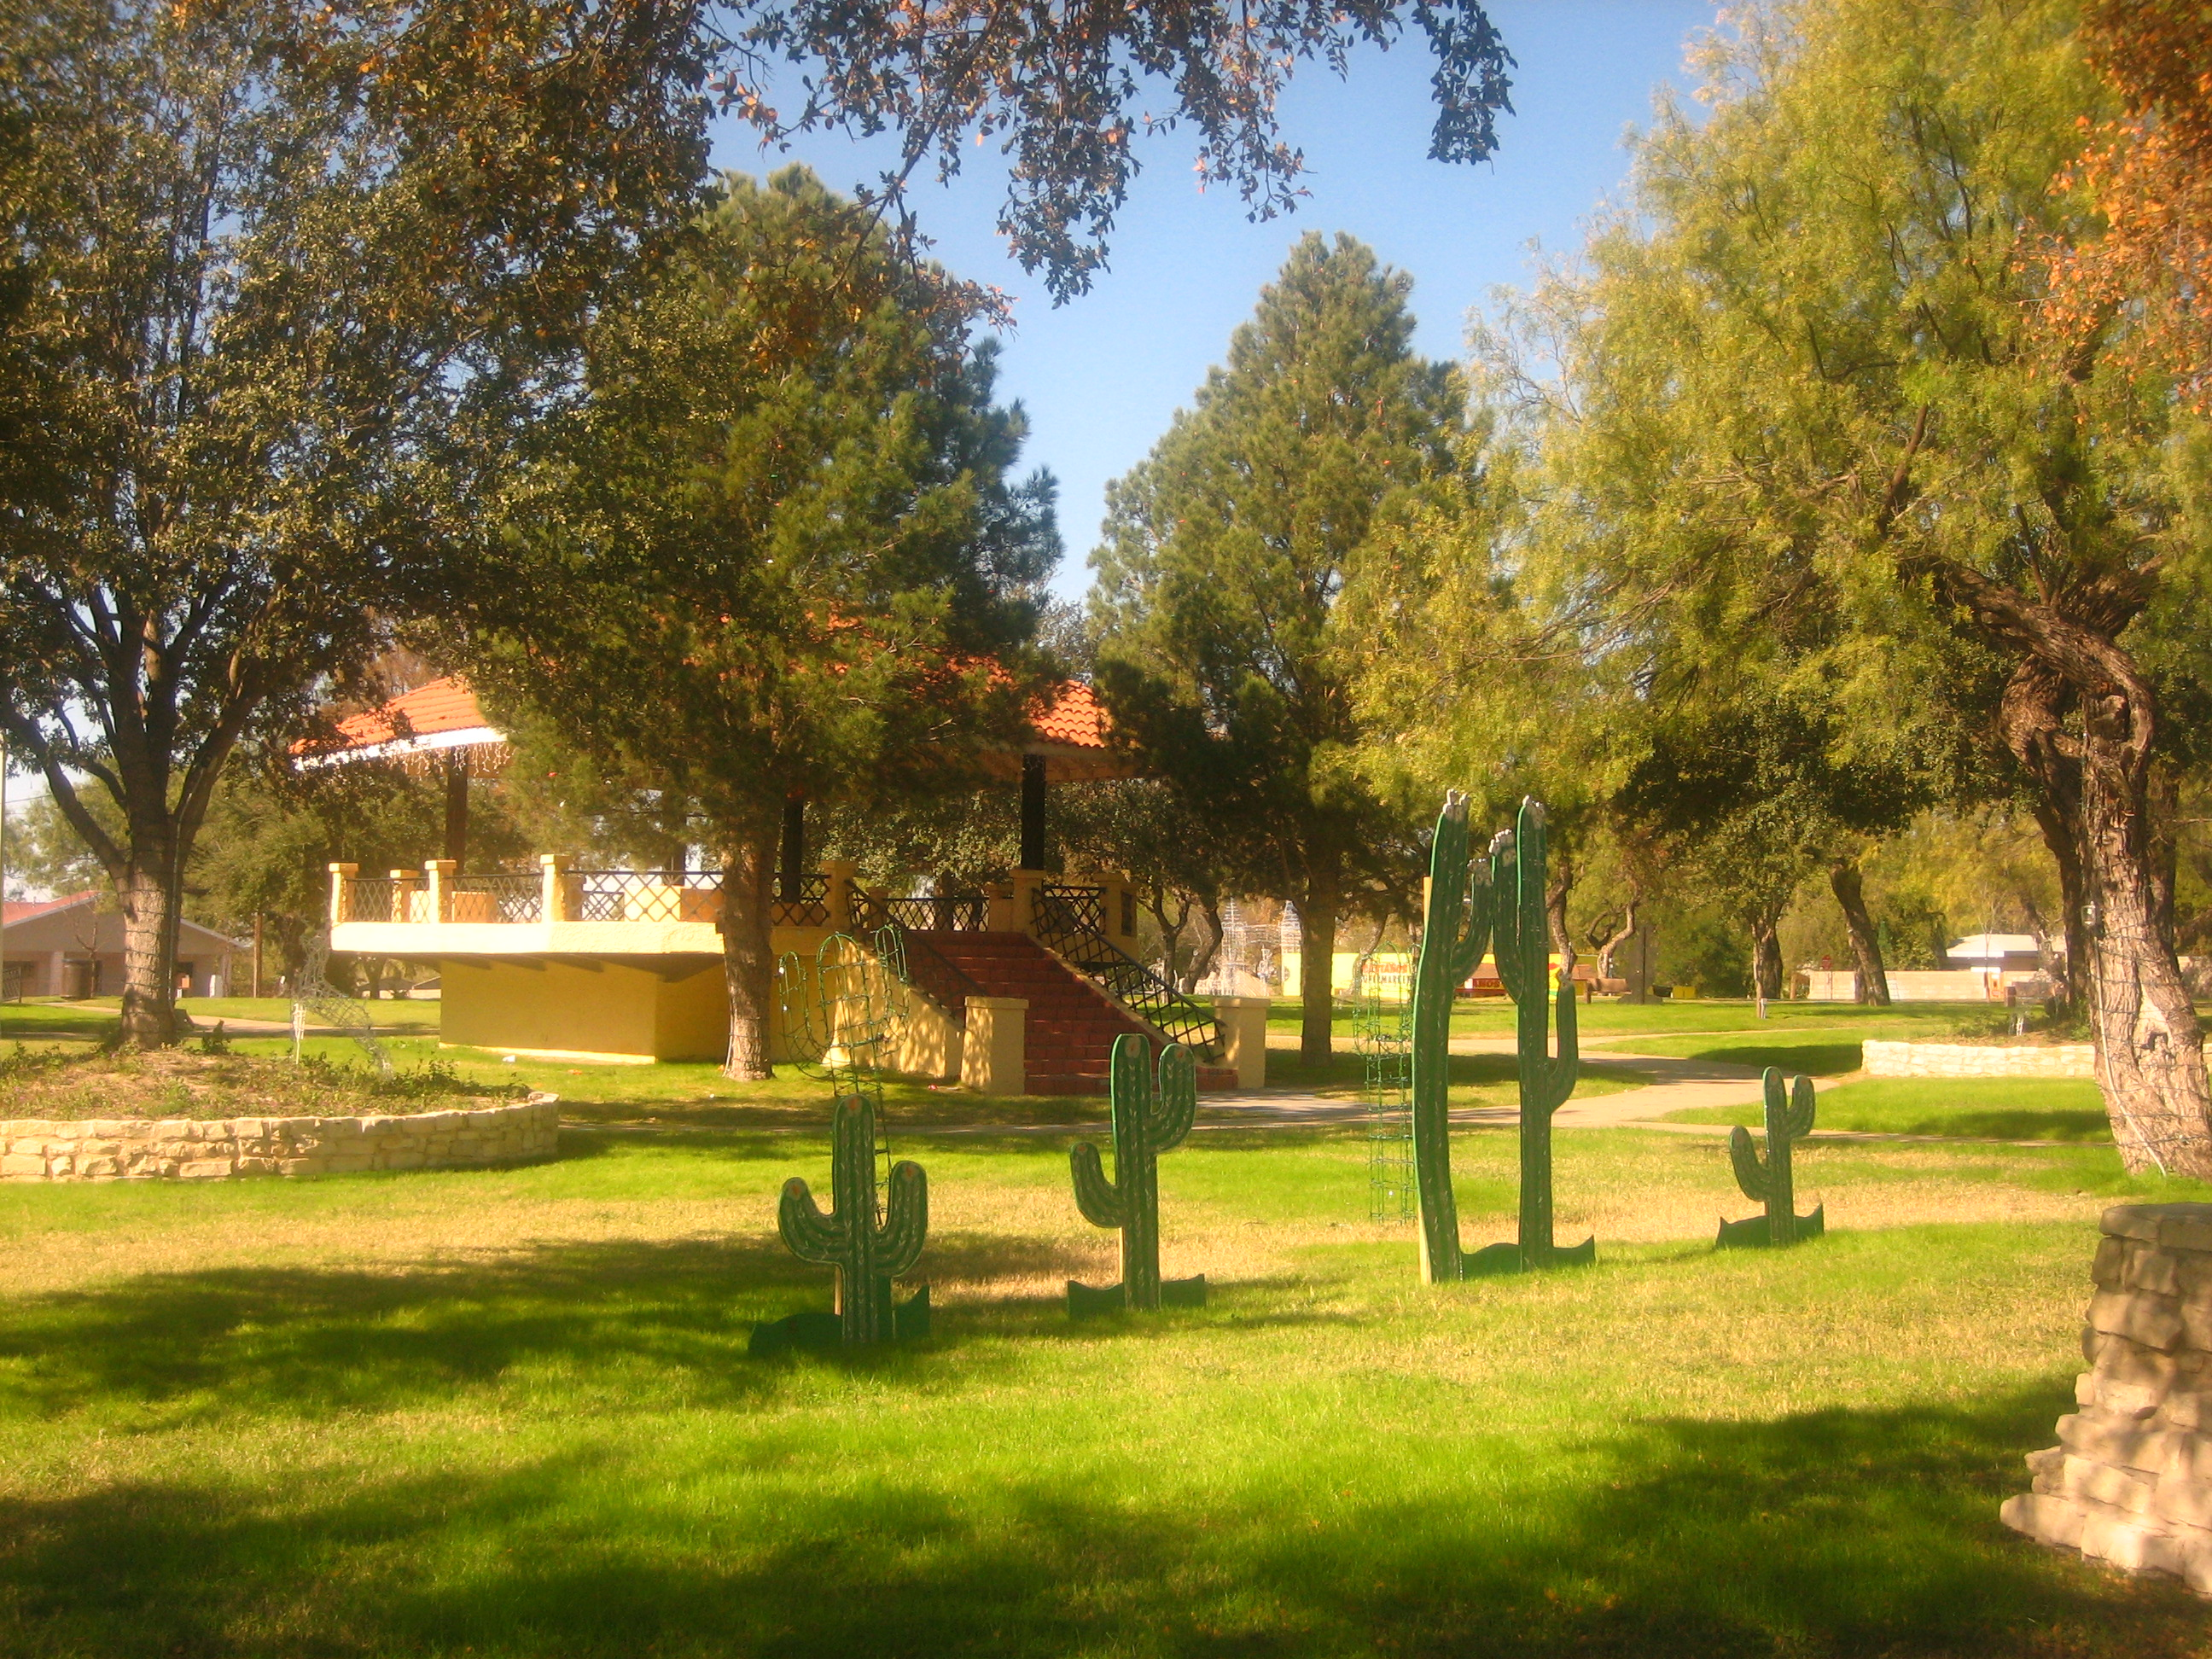 File:City Park in Eagle Pass, TX IMG 1986 JPG - Wikimedia Commons